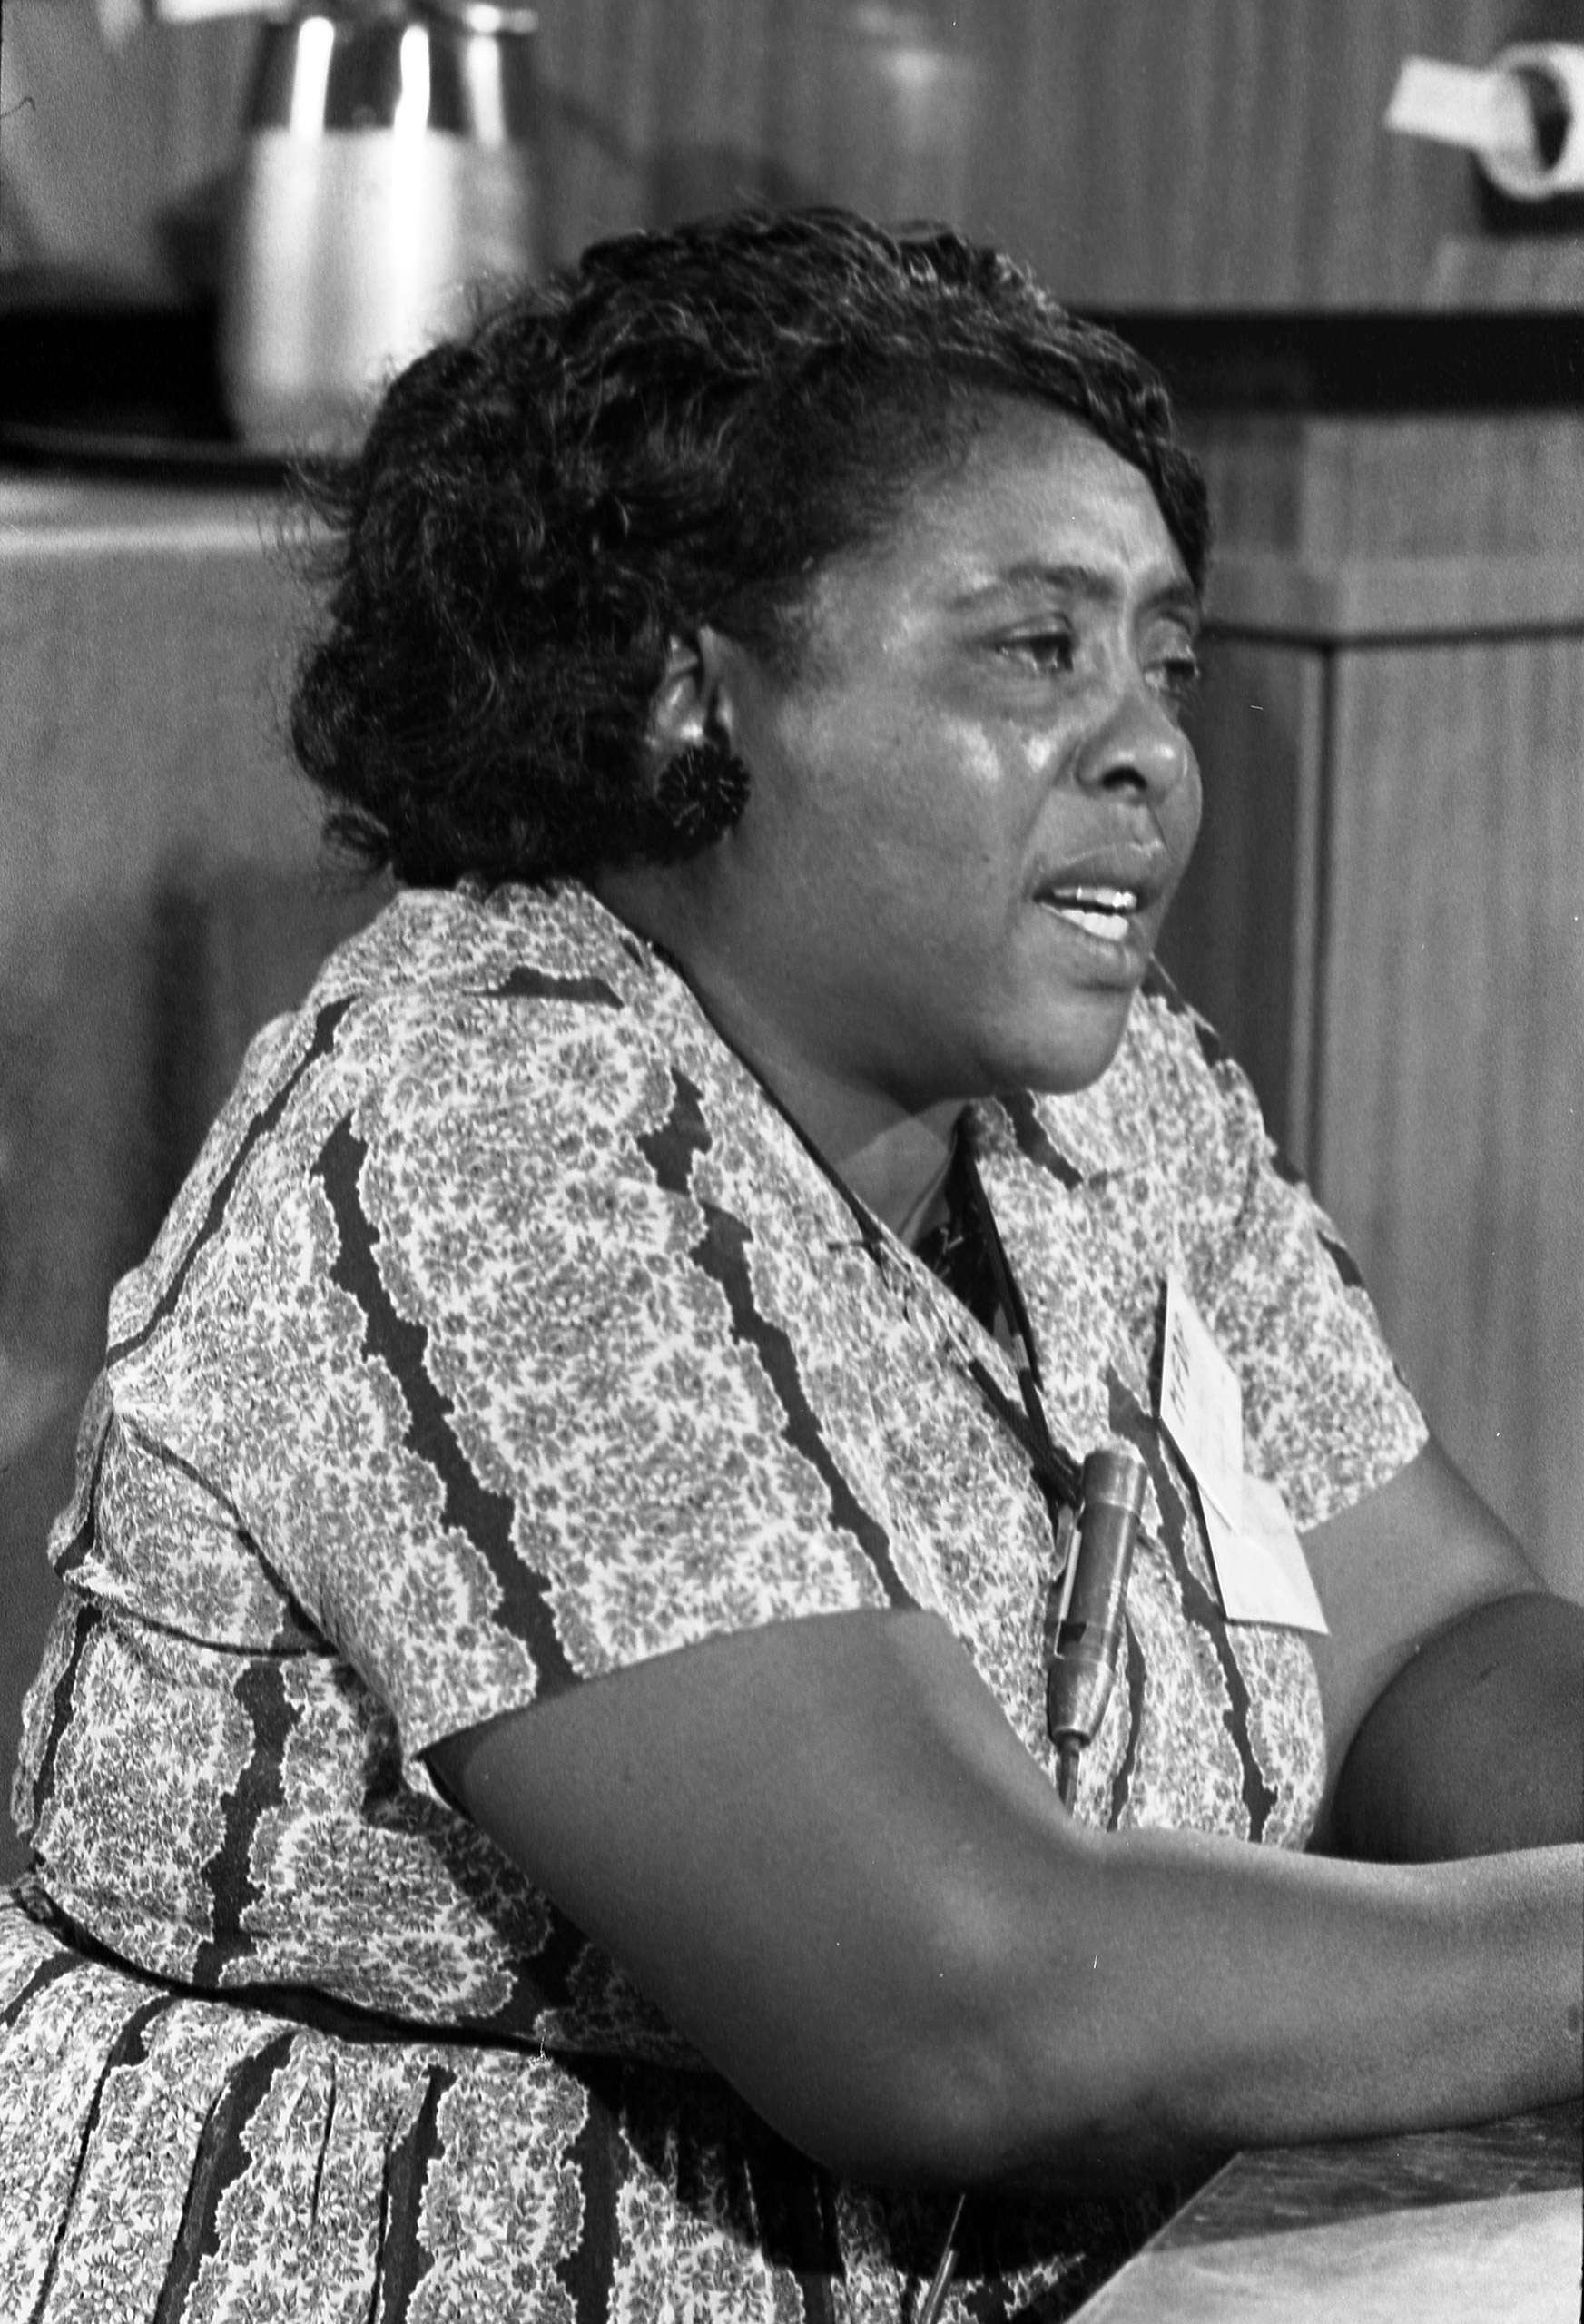 Fannie Lou Hamer, Mississippi Freedom Democratic Party delegate, at the Democratic National Convention, Atlantic City, New Jersey, August 1964.